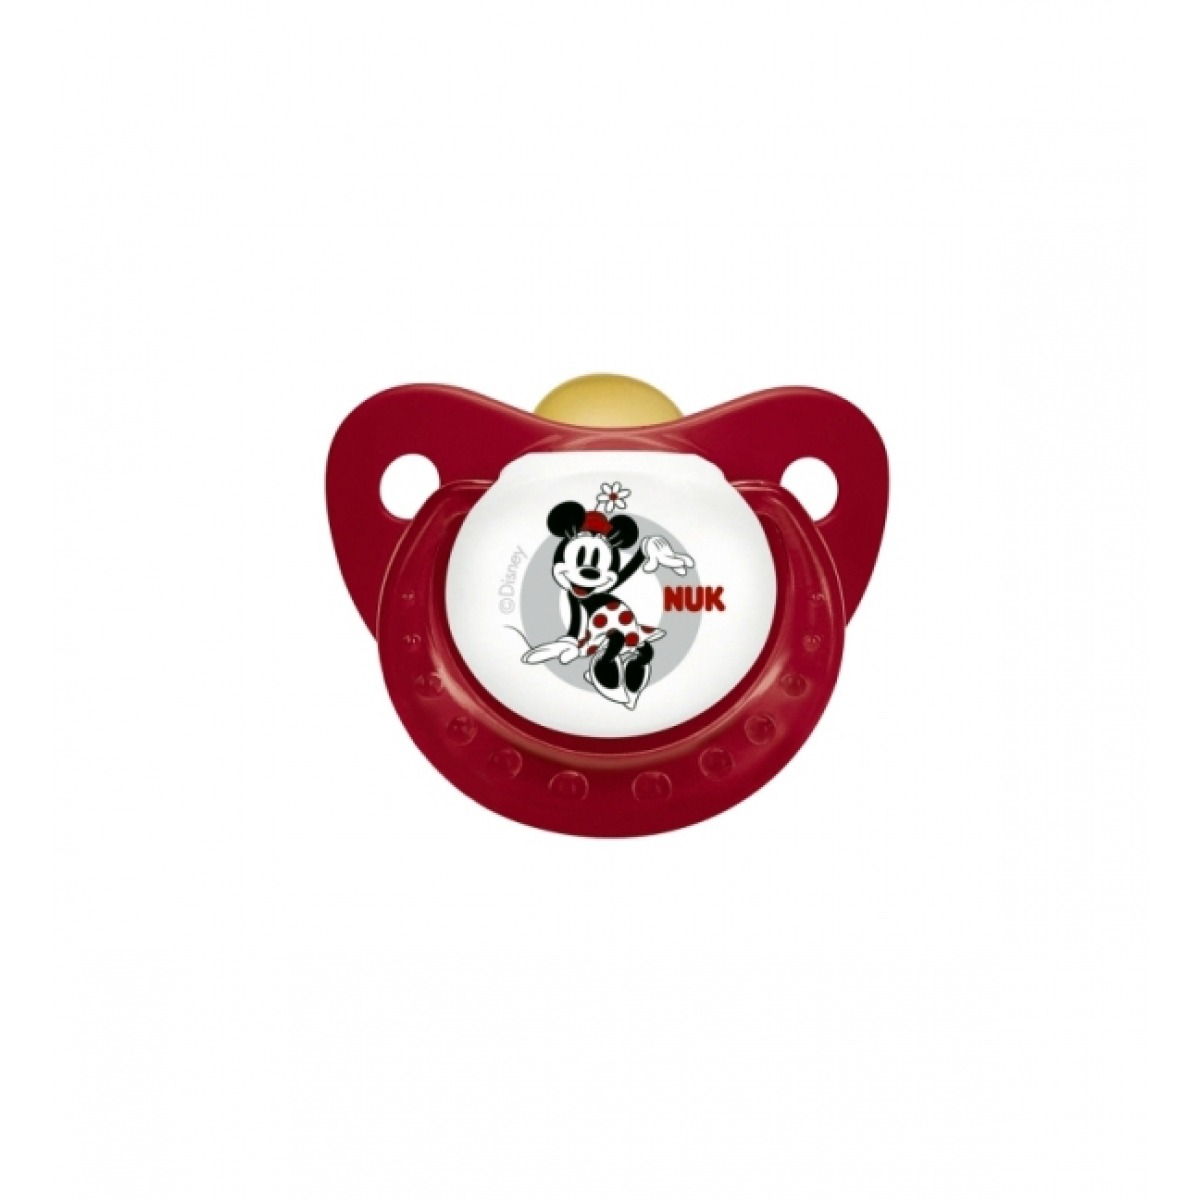 NUK CHUPETE FIRST CHOICE LTEX MICKEY MOUSE TALLA 2 6 18 MESES BLSTER 1 U.